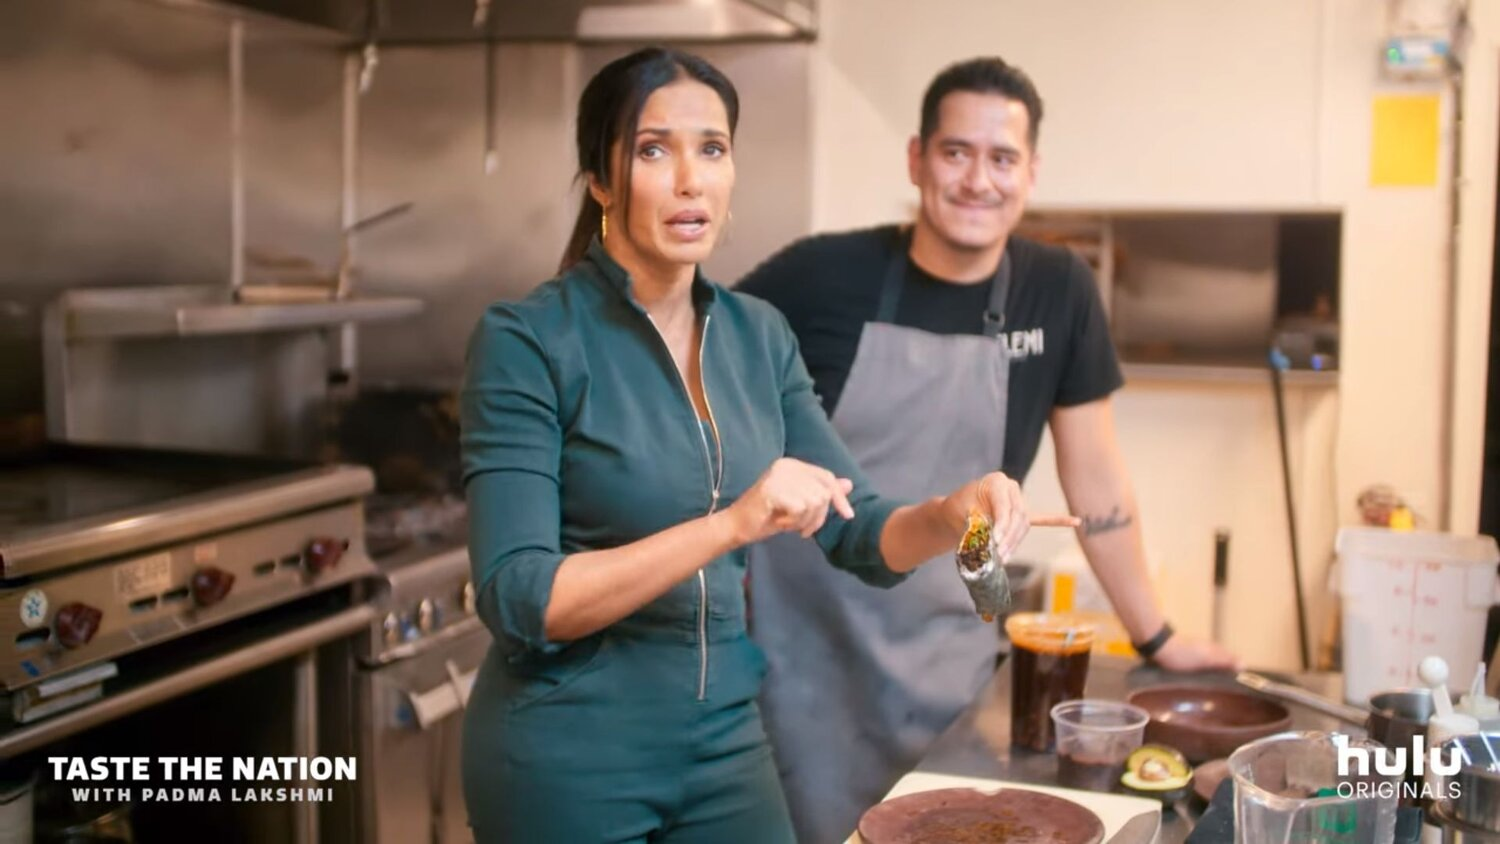 Get Ready to Drool Over the Delicious Food in Trailer for TASTE THE NATION WITH PADMA LAKSHMI — GeekTyrant